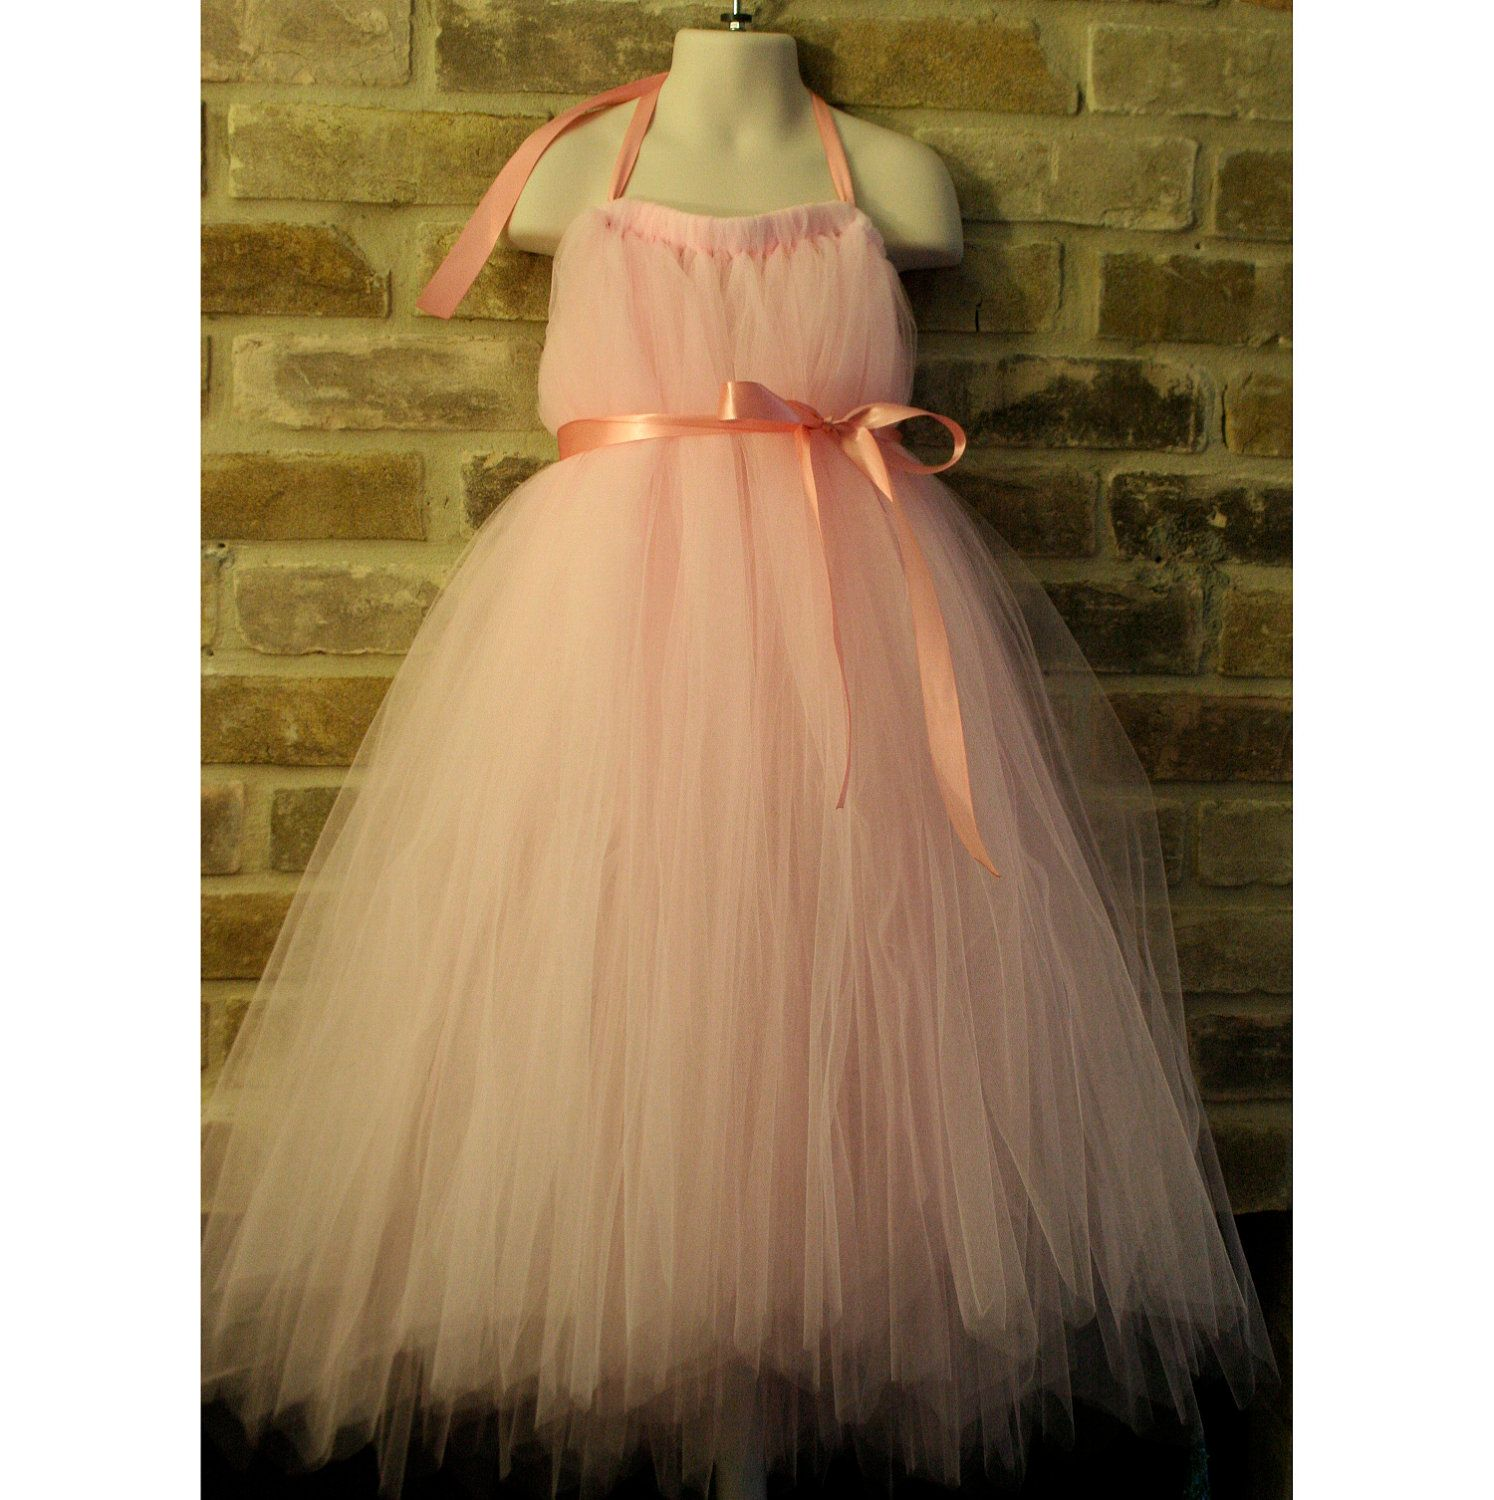 Size 2 3 4 And 5 Years Pink Ballerina Tutu Dress Adlt Sizes